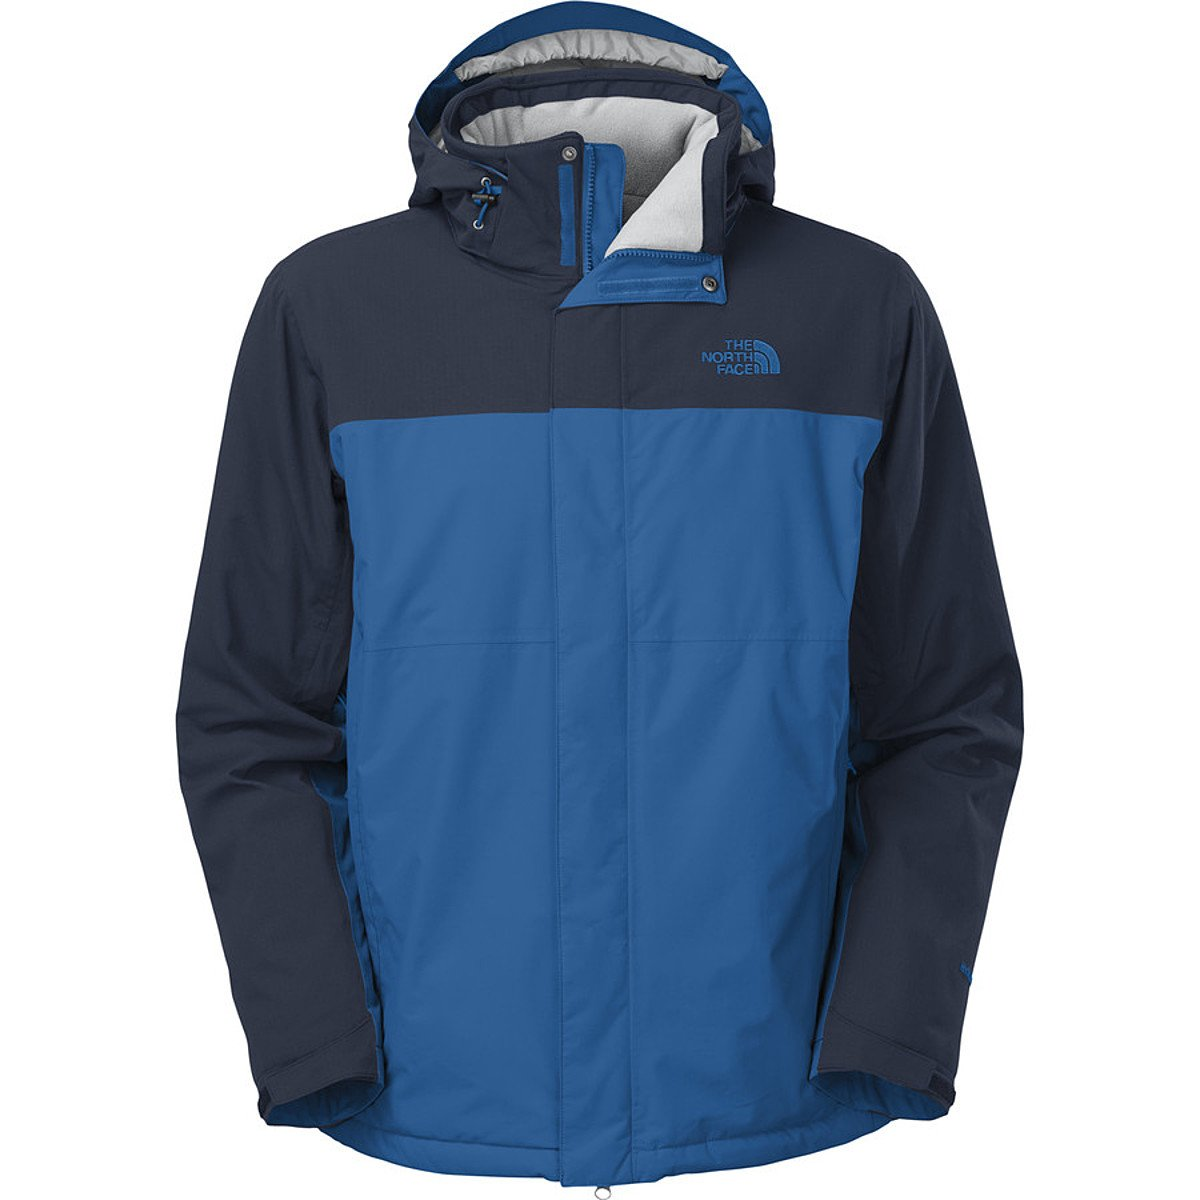 Snorkel bluee cosmic bluee The North Face Men's Inlux Insulated